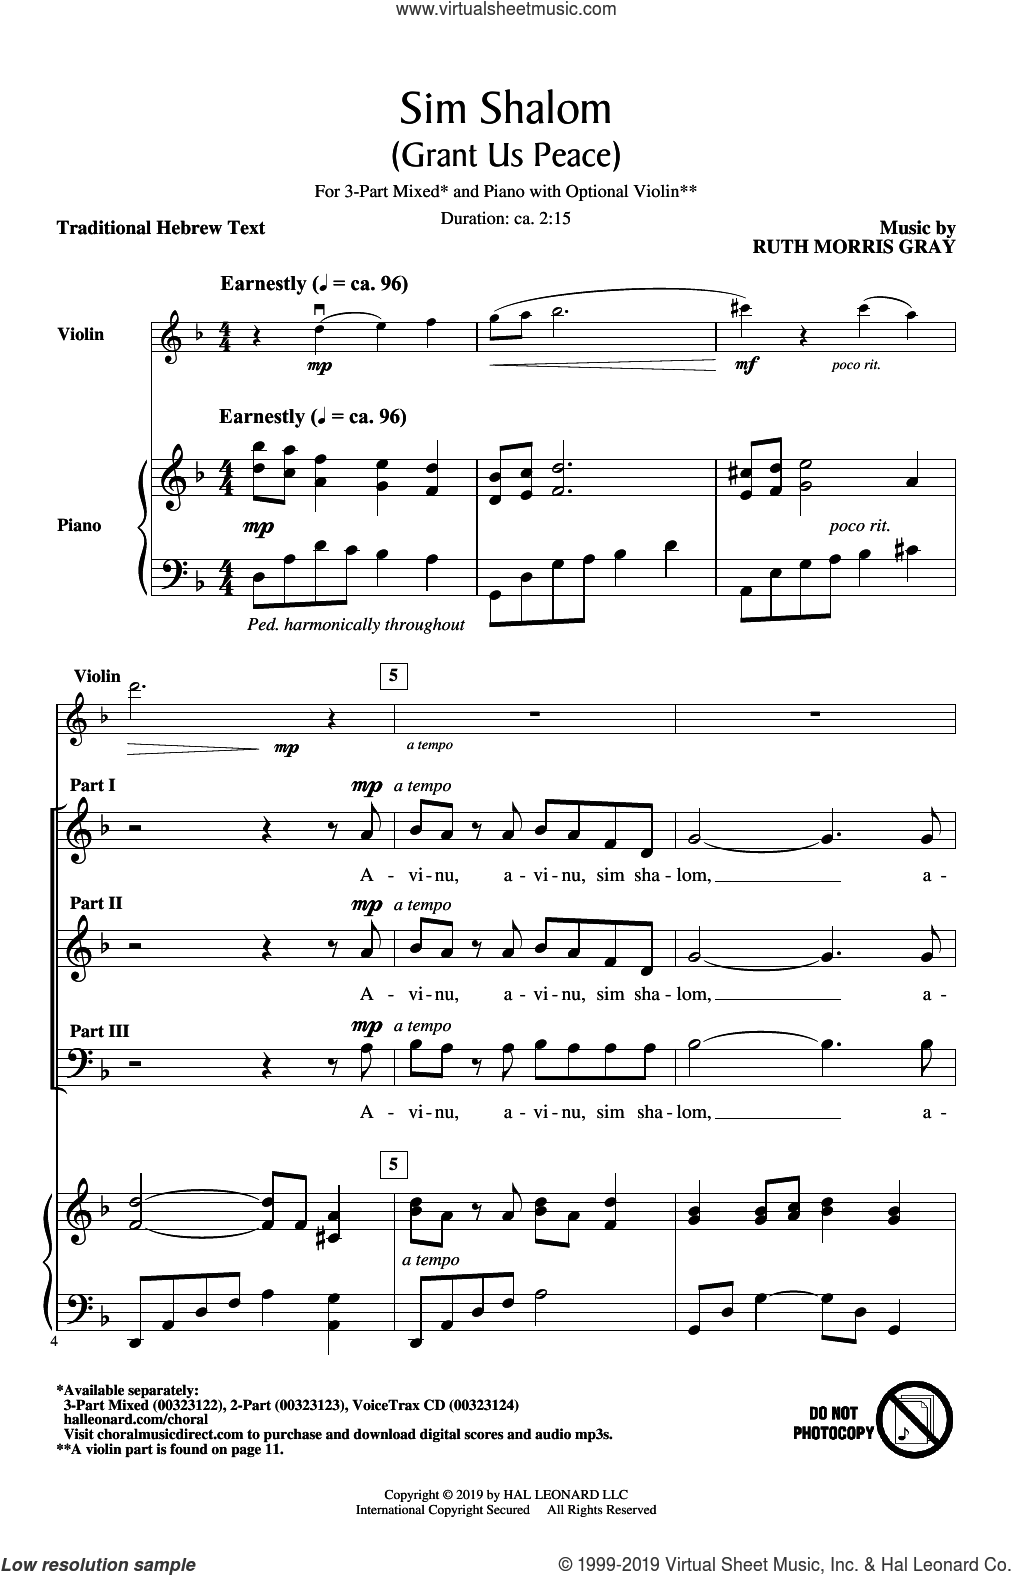 Sim Shalom (Grant Us Peace) sheet music for choir (3-Part Mixed) by Ruth Morris Gray and Traditional Hebrew Text, intermediate skill level